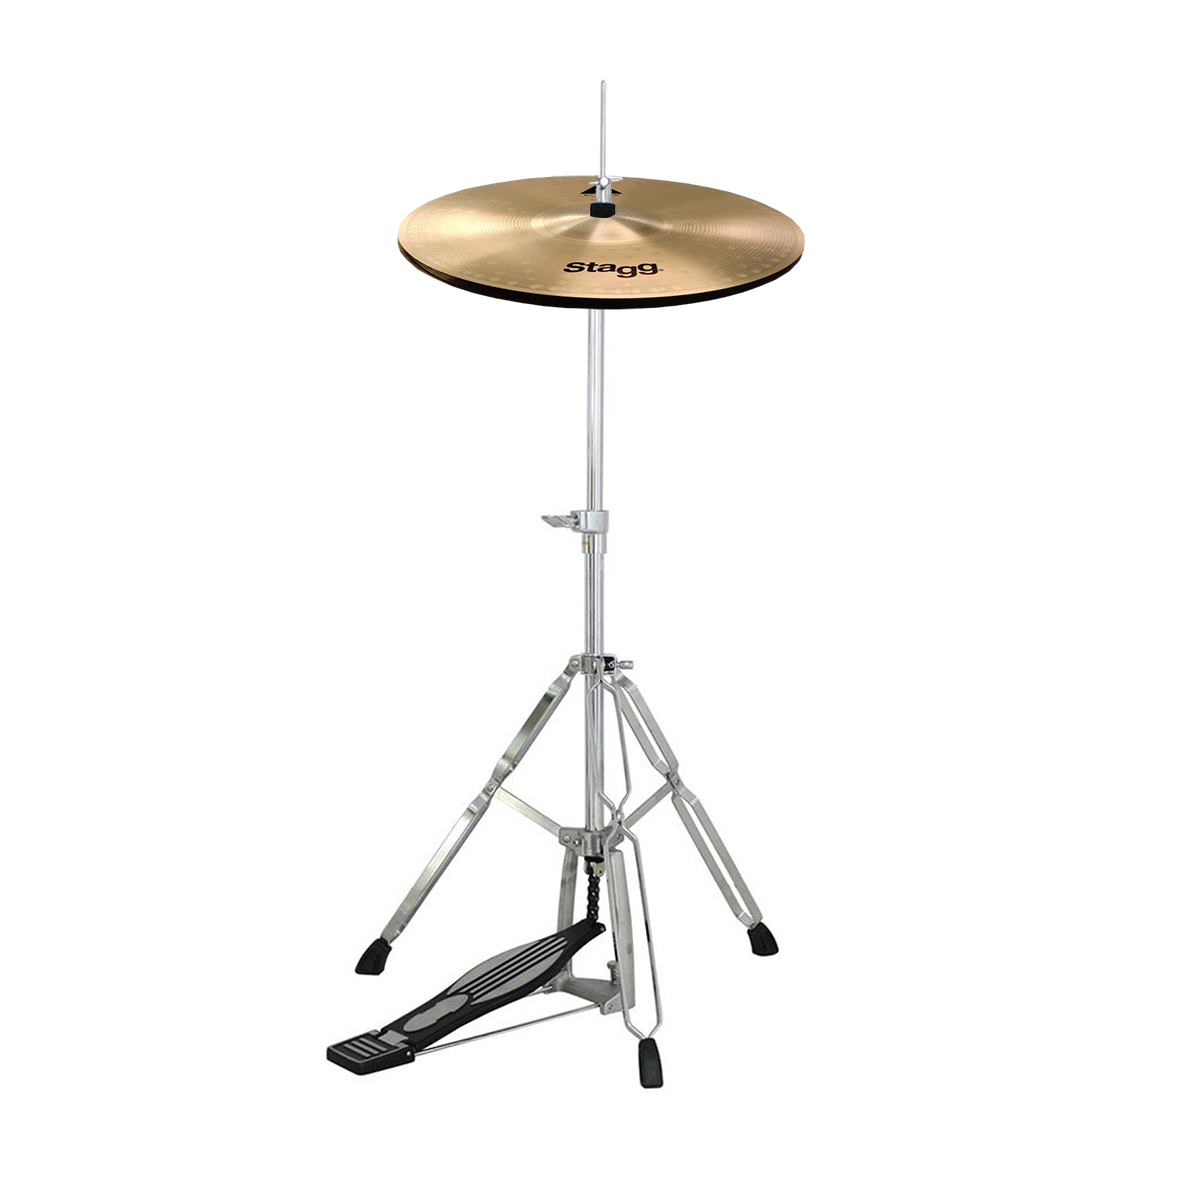 stagg 14 ax hi hat cymbals mapex tornado cymbal stand great deal rockem music. Black Bedroom Furniture Sets. Home Design Ideas